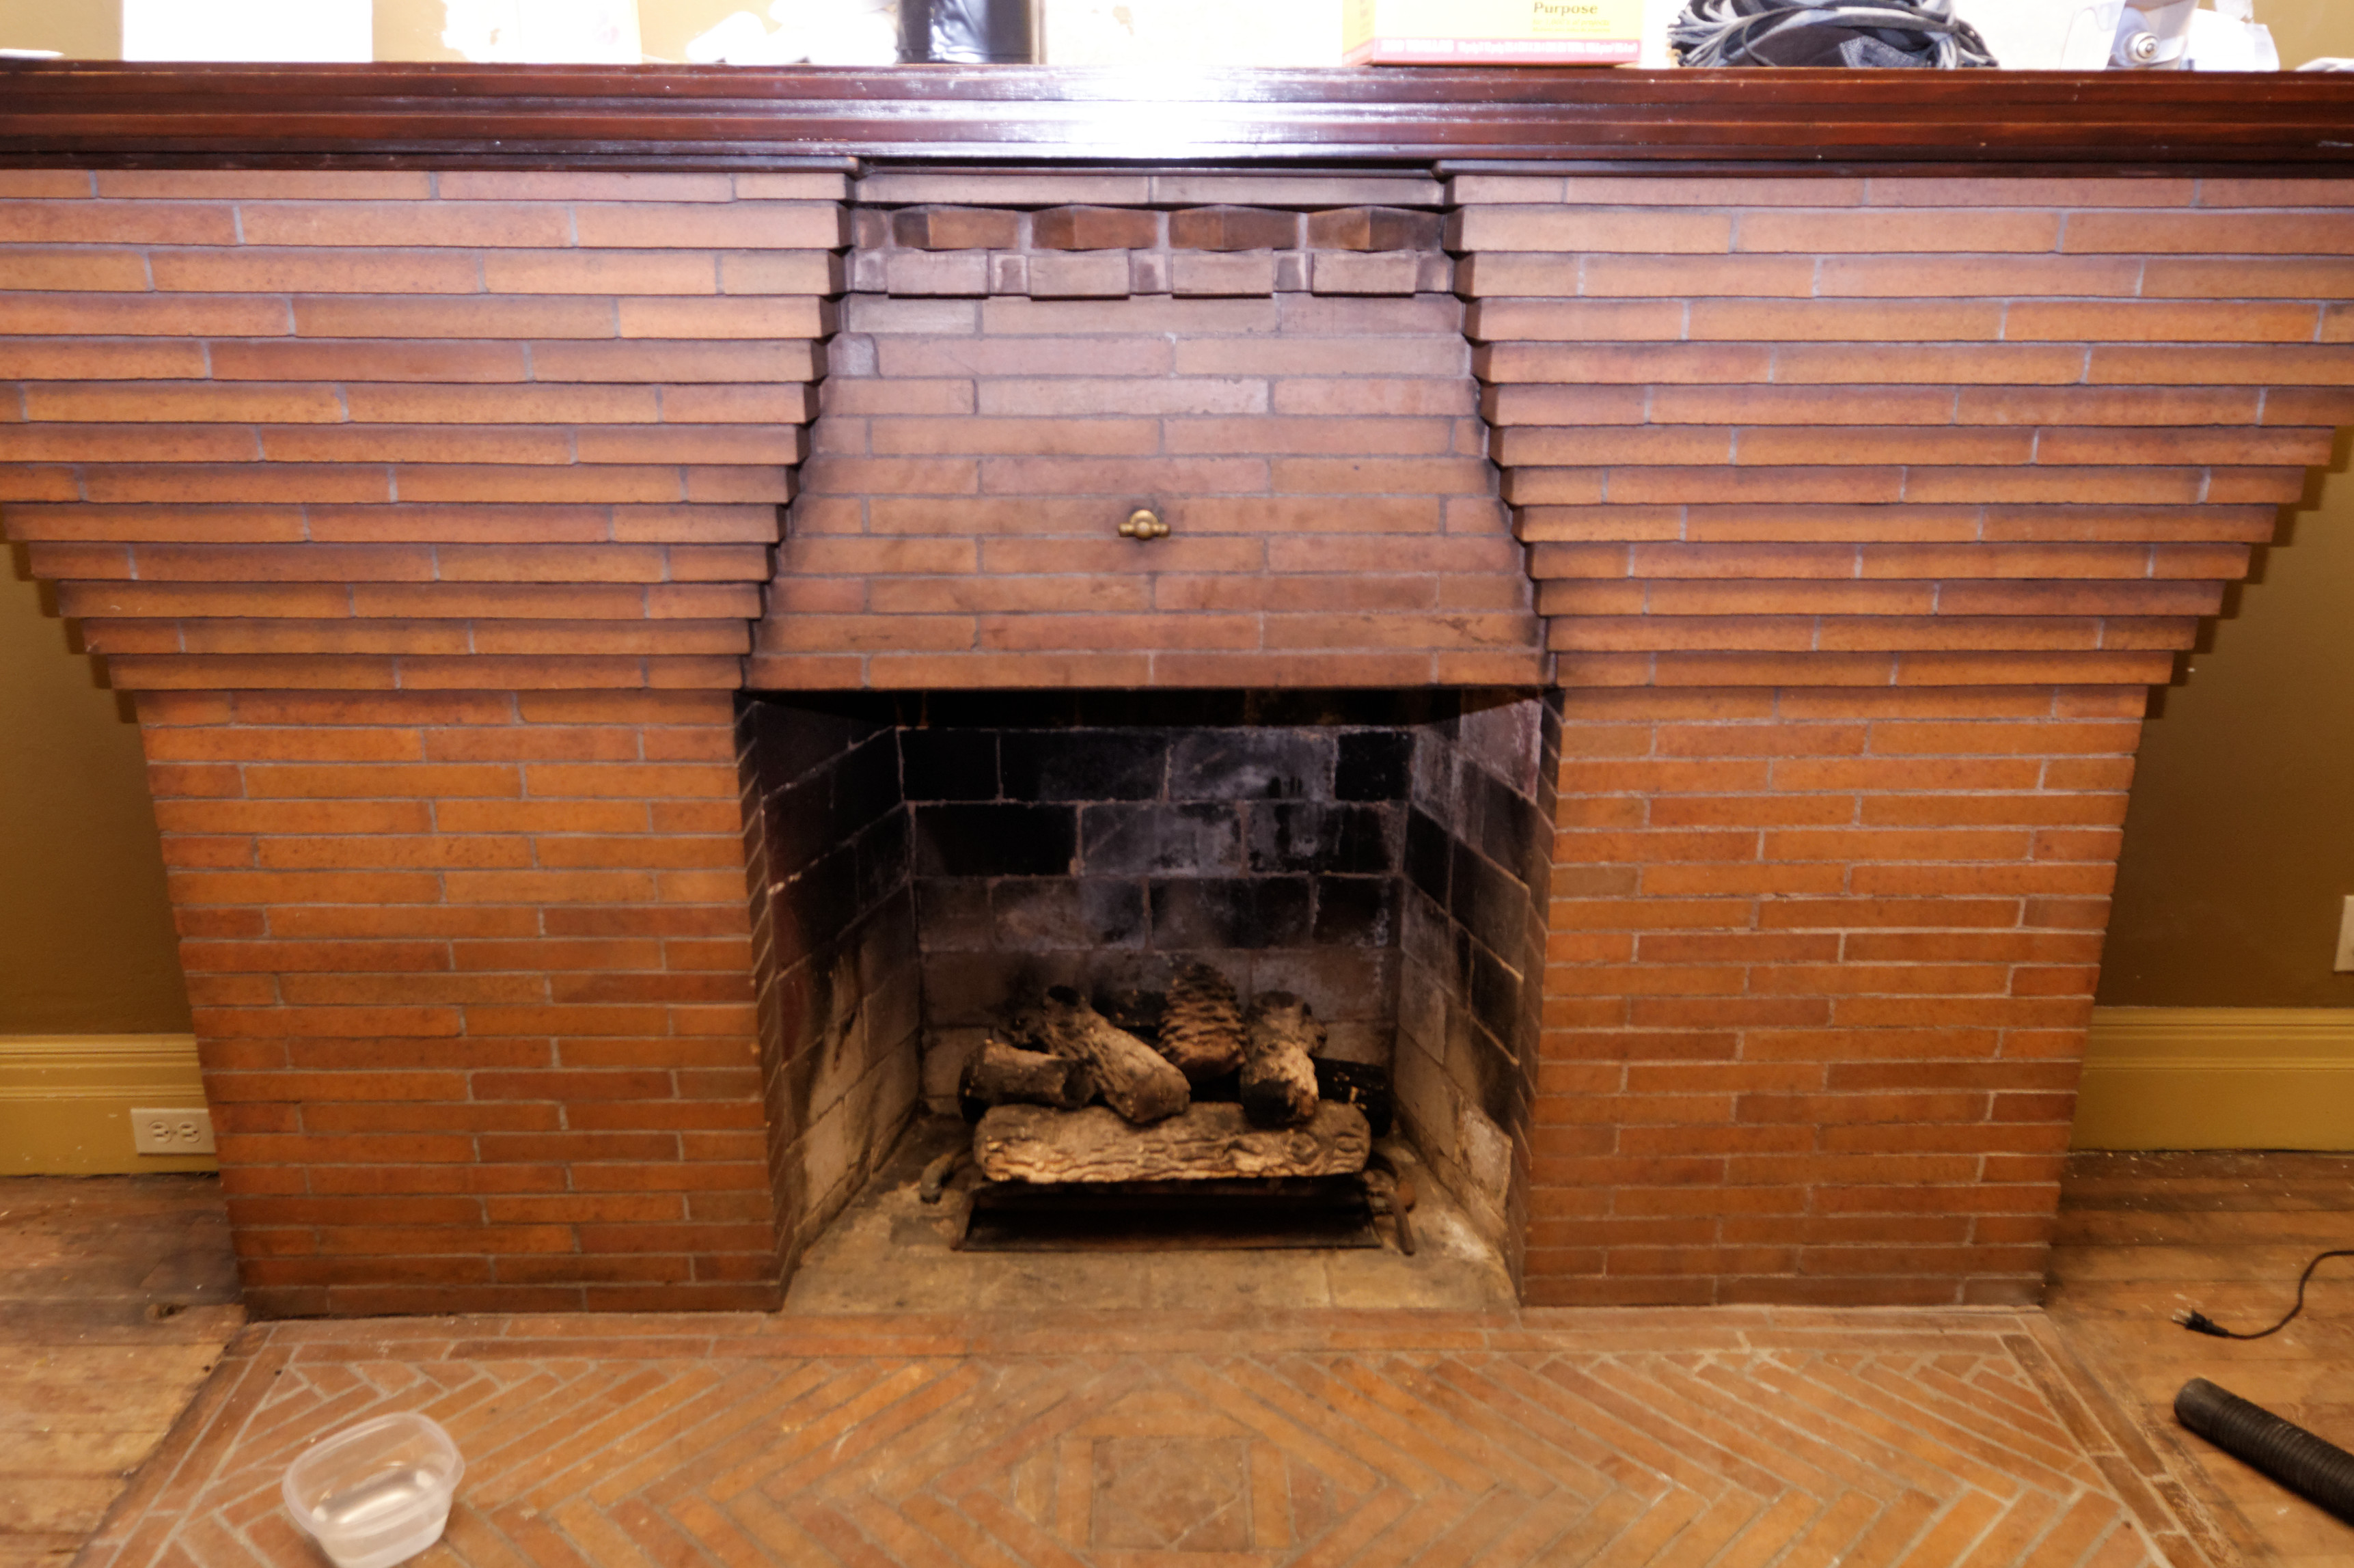 A clean fireplace